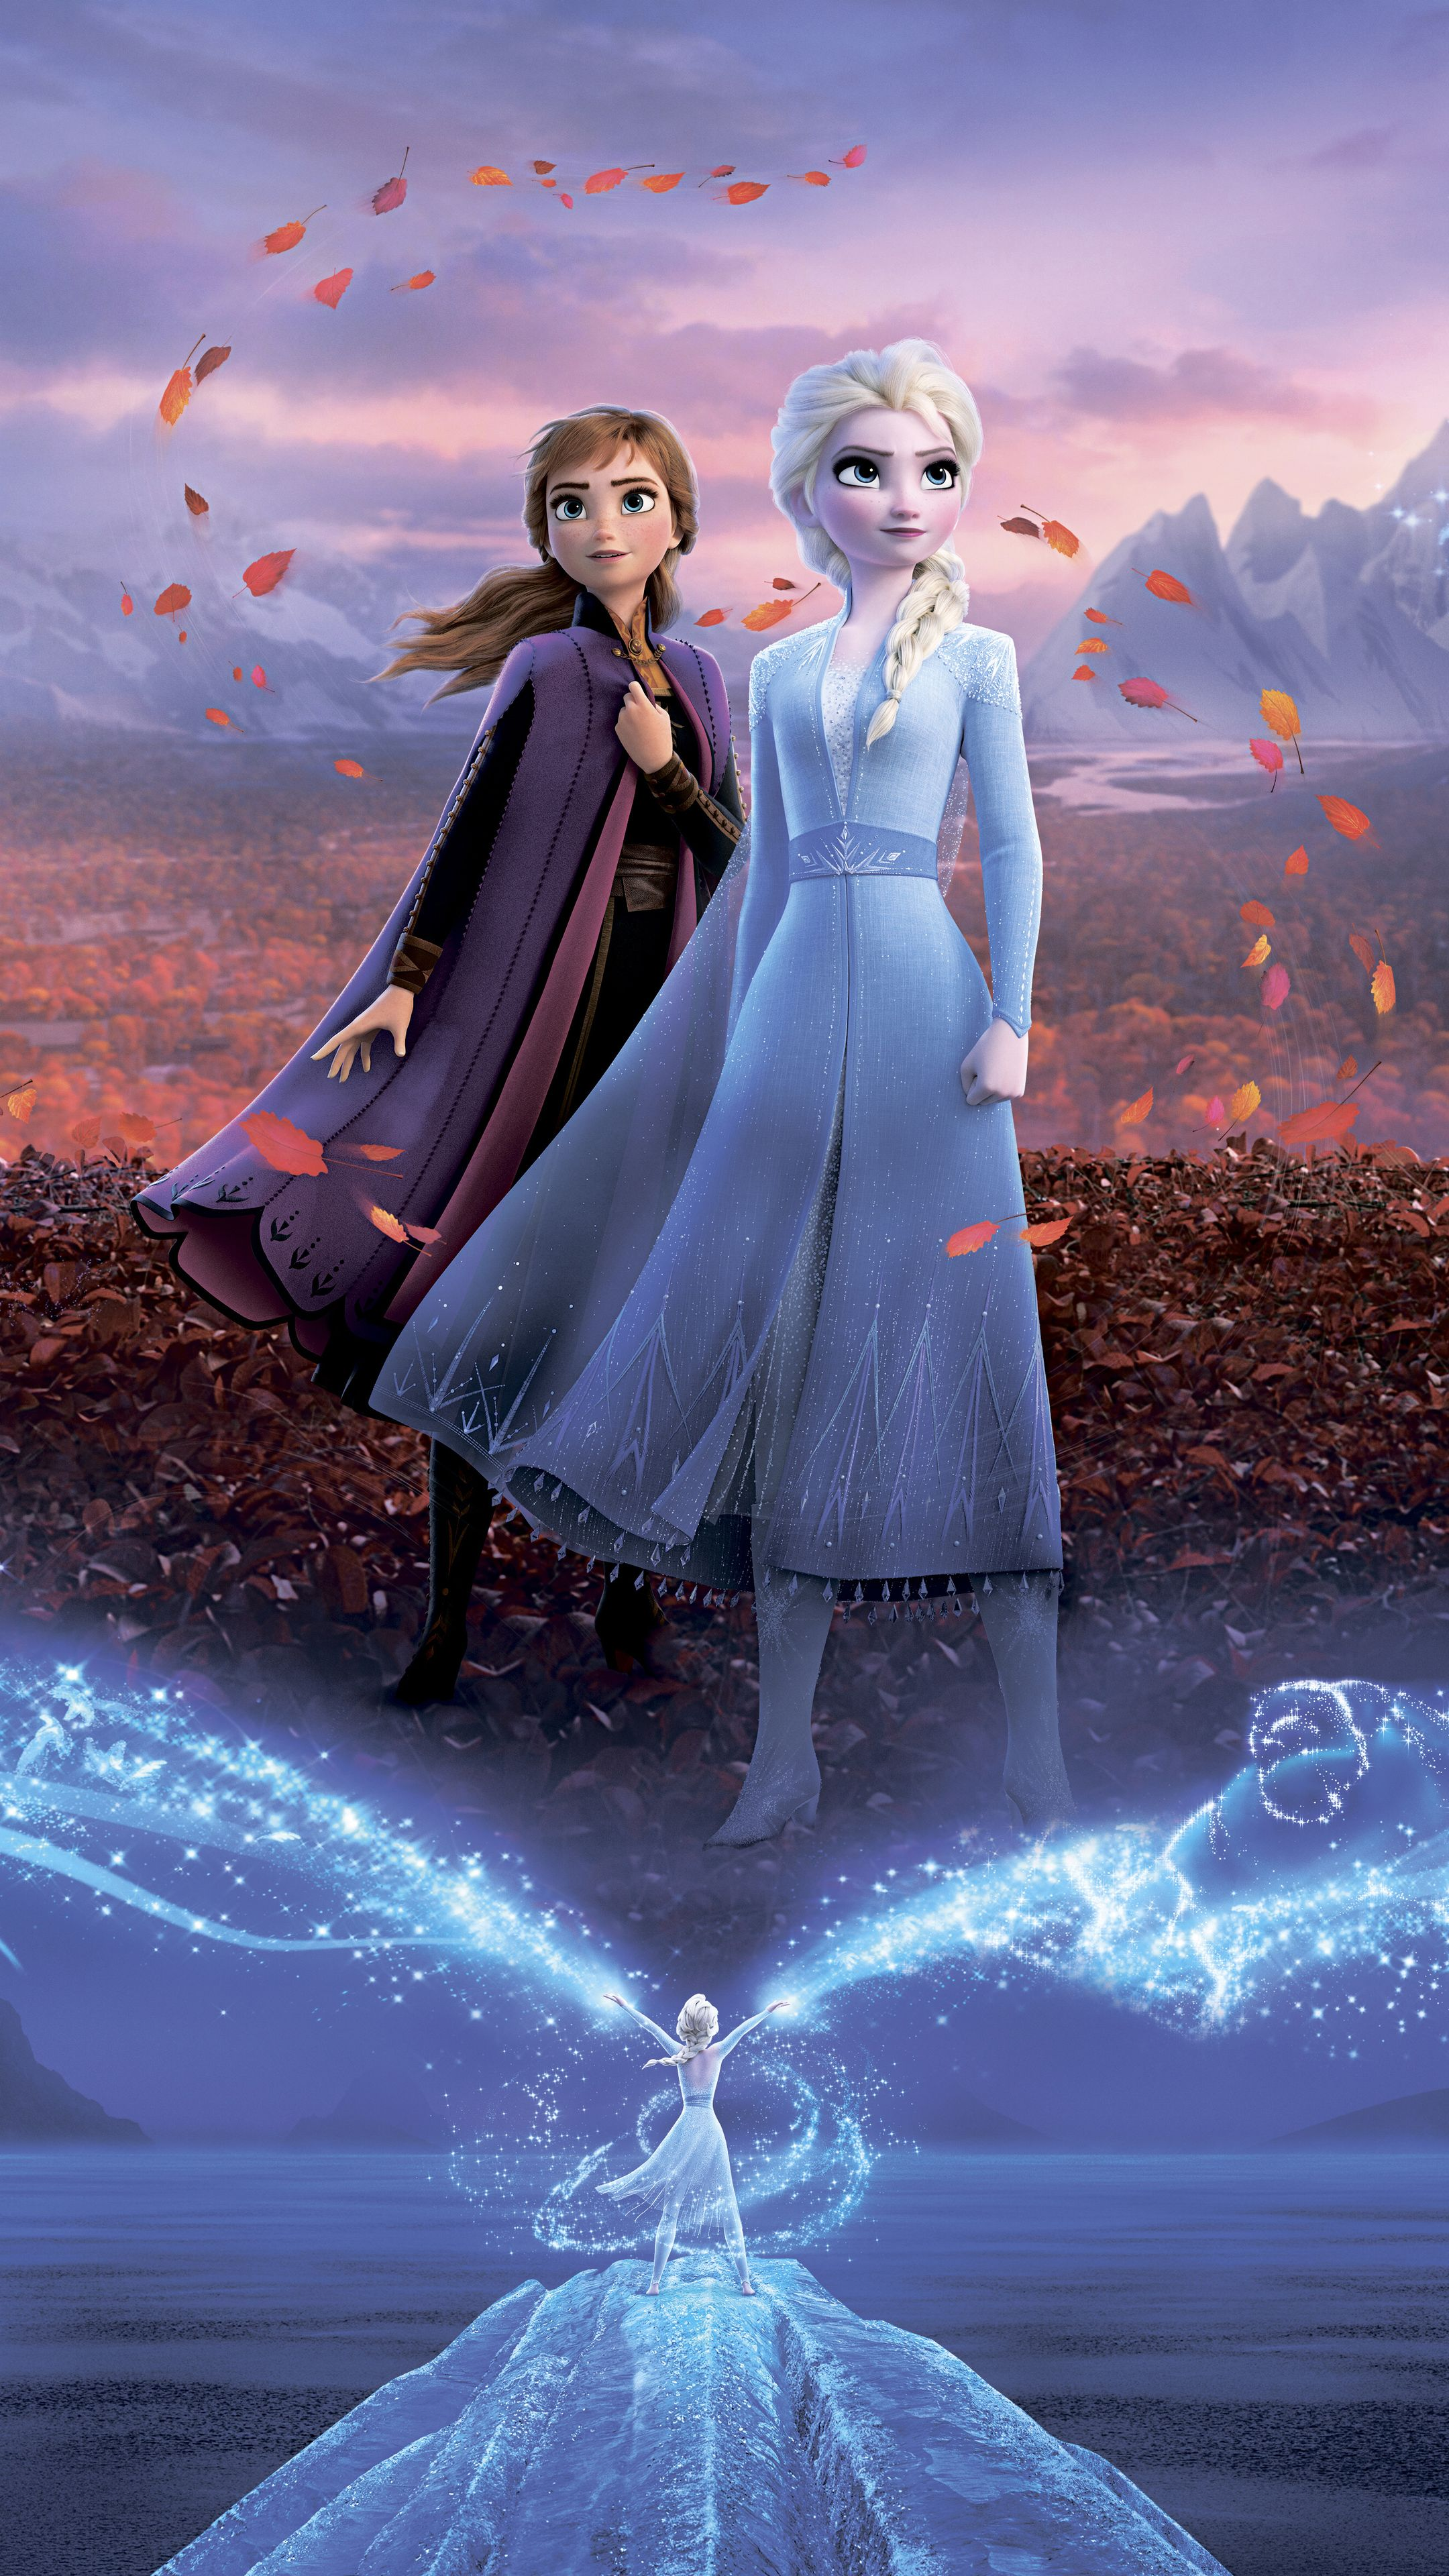 Frozen 2 5k In 2160x3840 Resolution Frozen Wallpaper Disney Princess Wallpaper Disney Princess Frozen